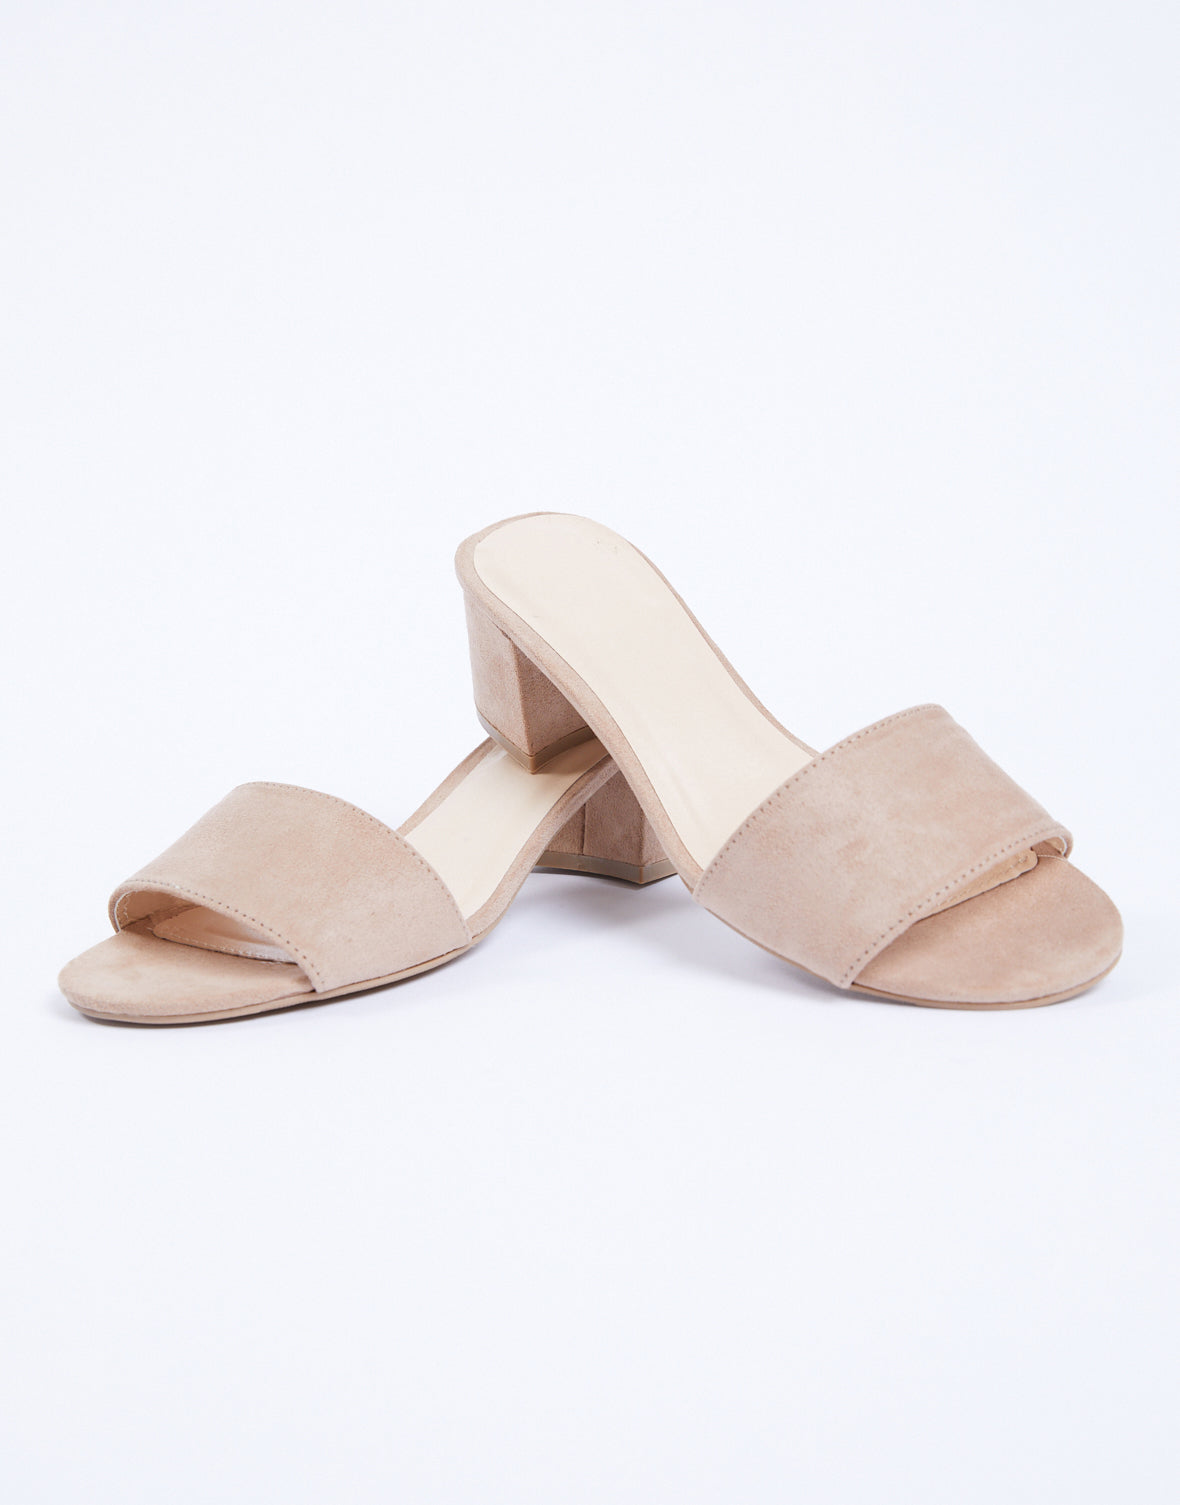 Alessia Simple Mule Sandals